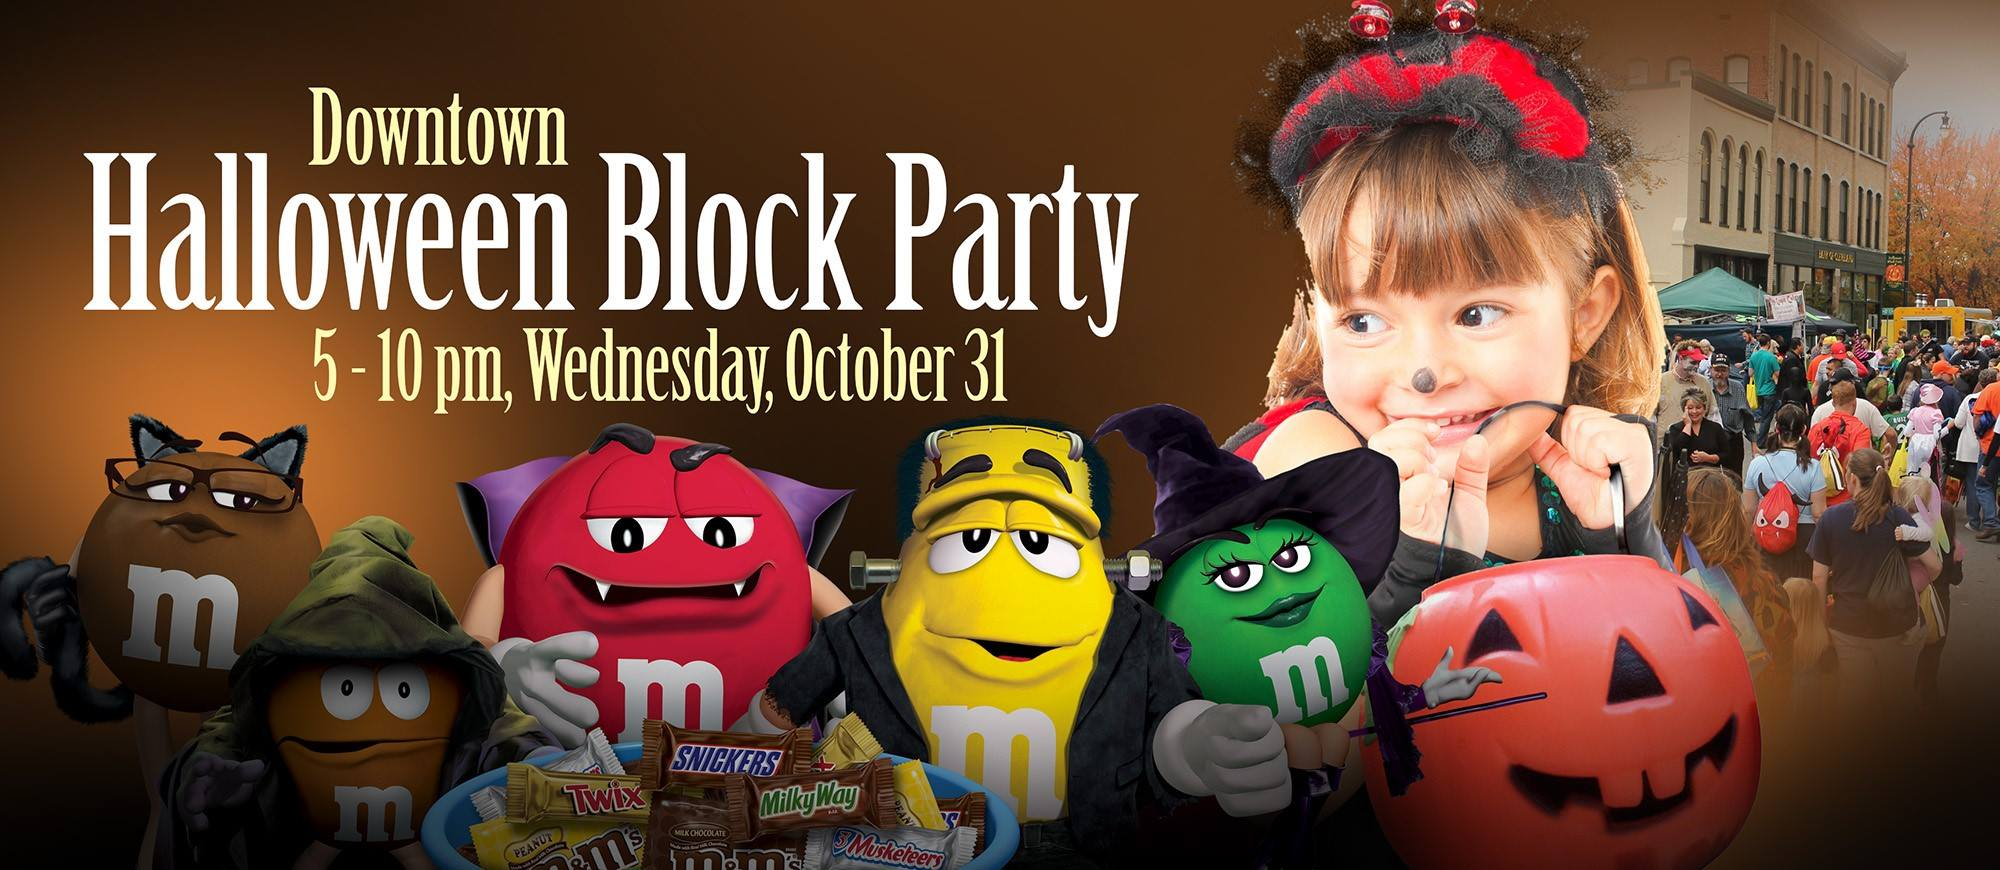 Downtown Halloween Block Party - Visit Cleveland TN